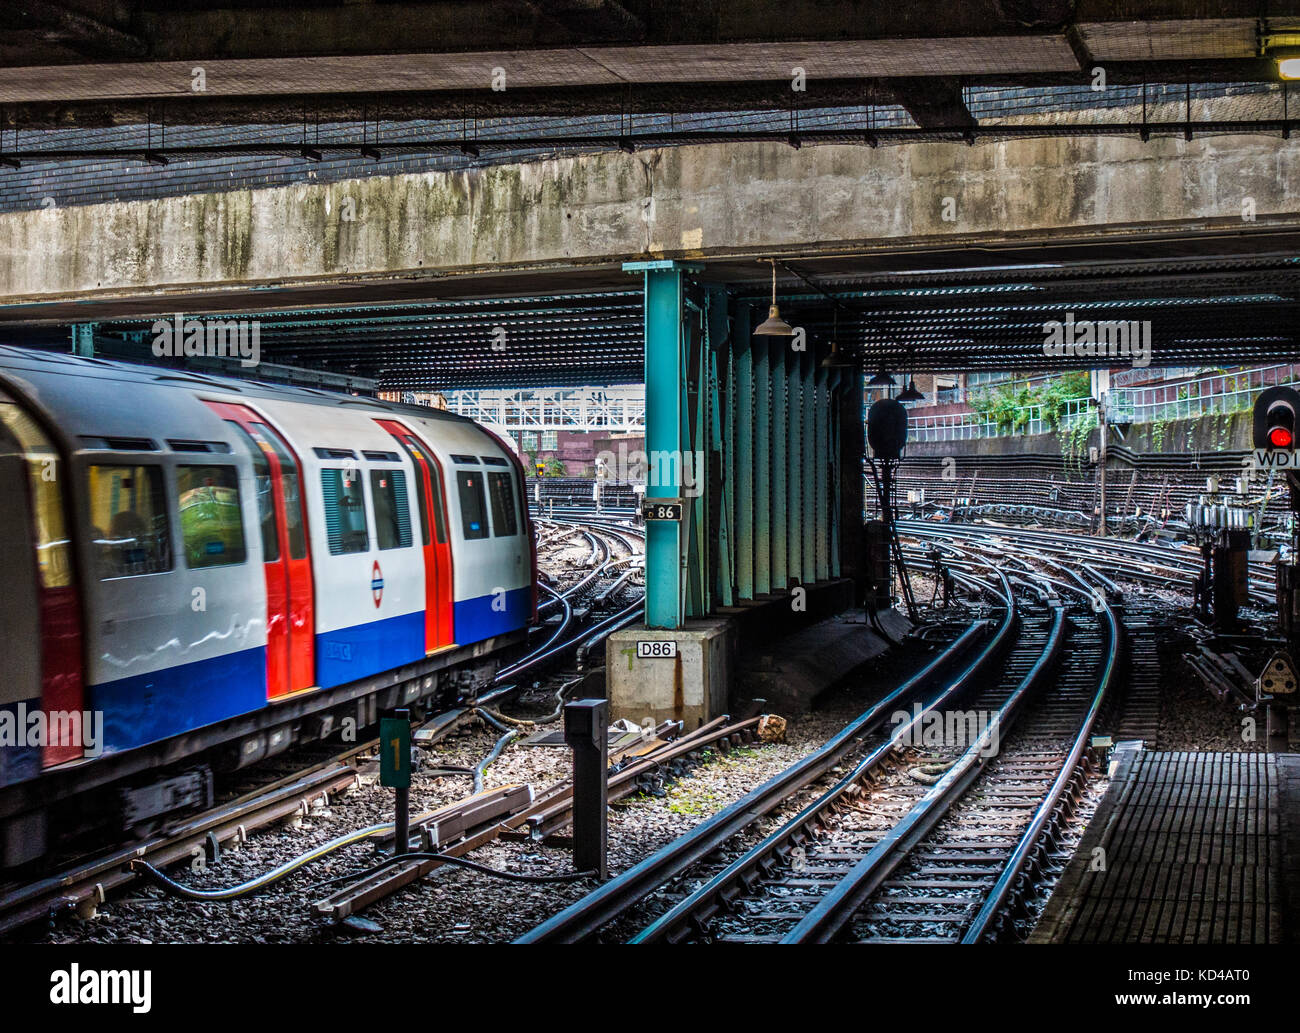 London Underground tube train on the line tracks, just leaving an overground station, despite most of the route Stock Photo